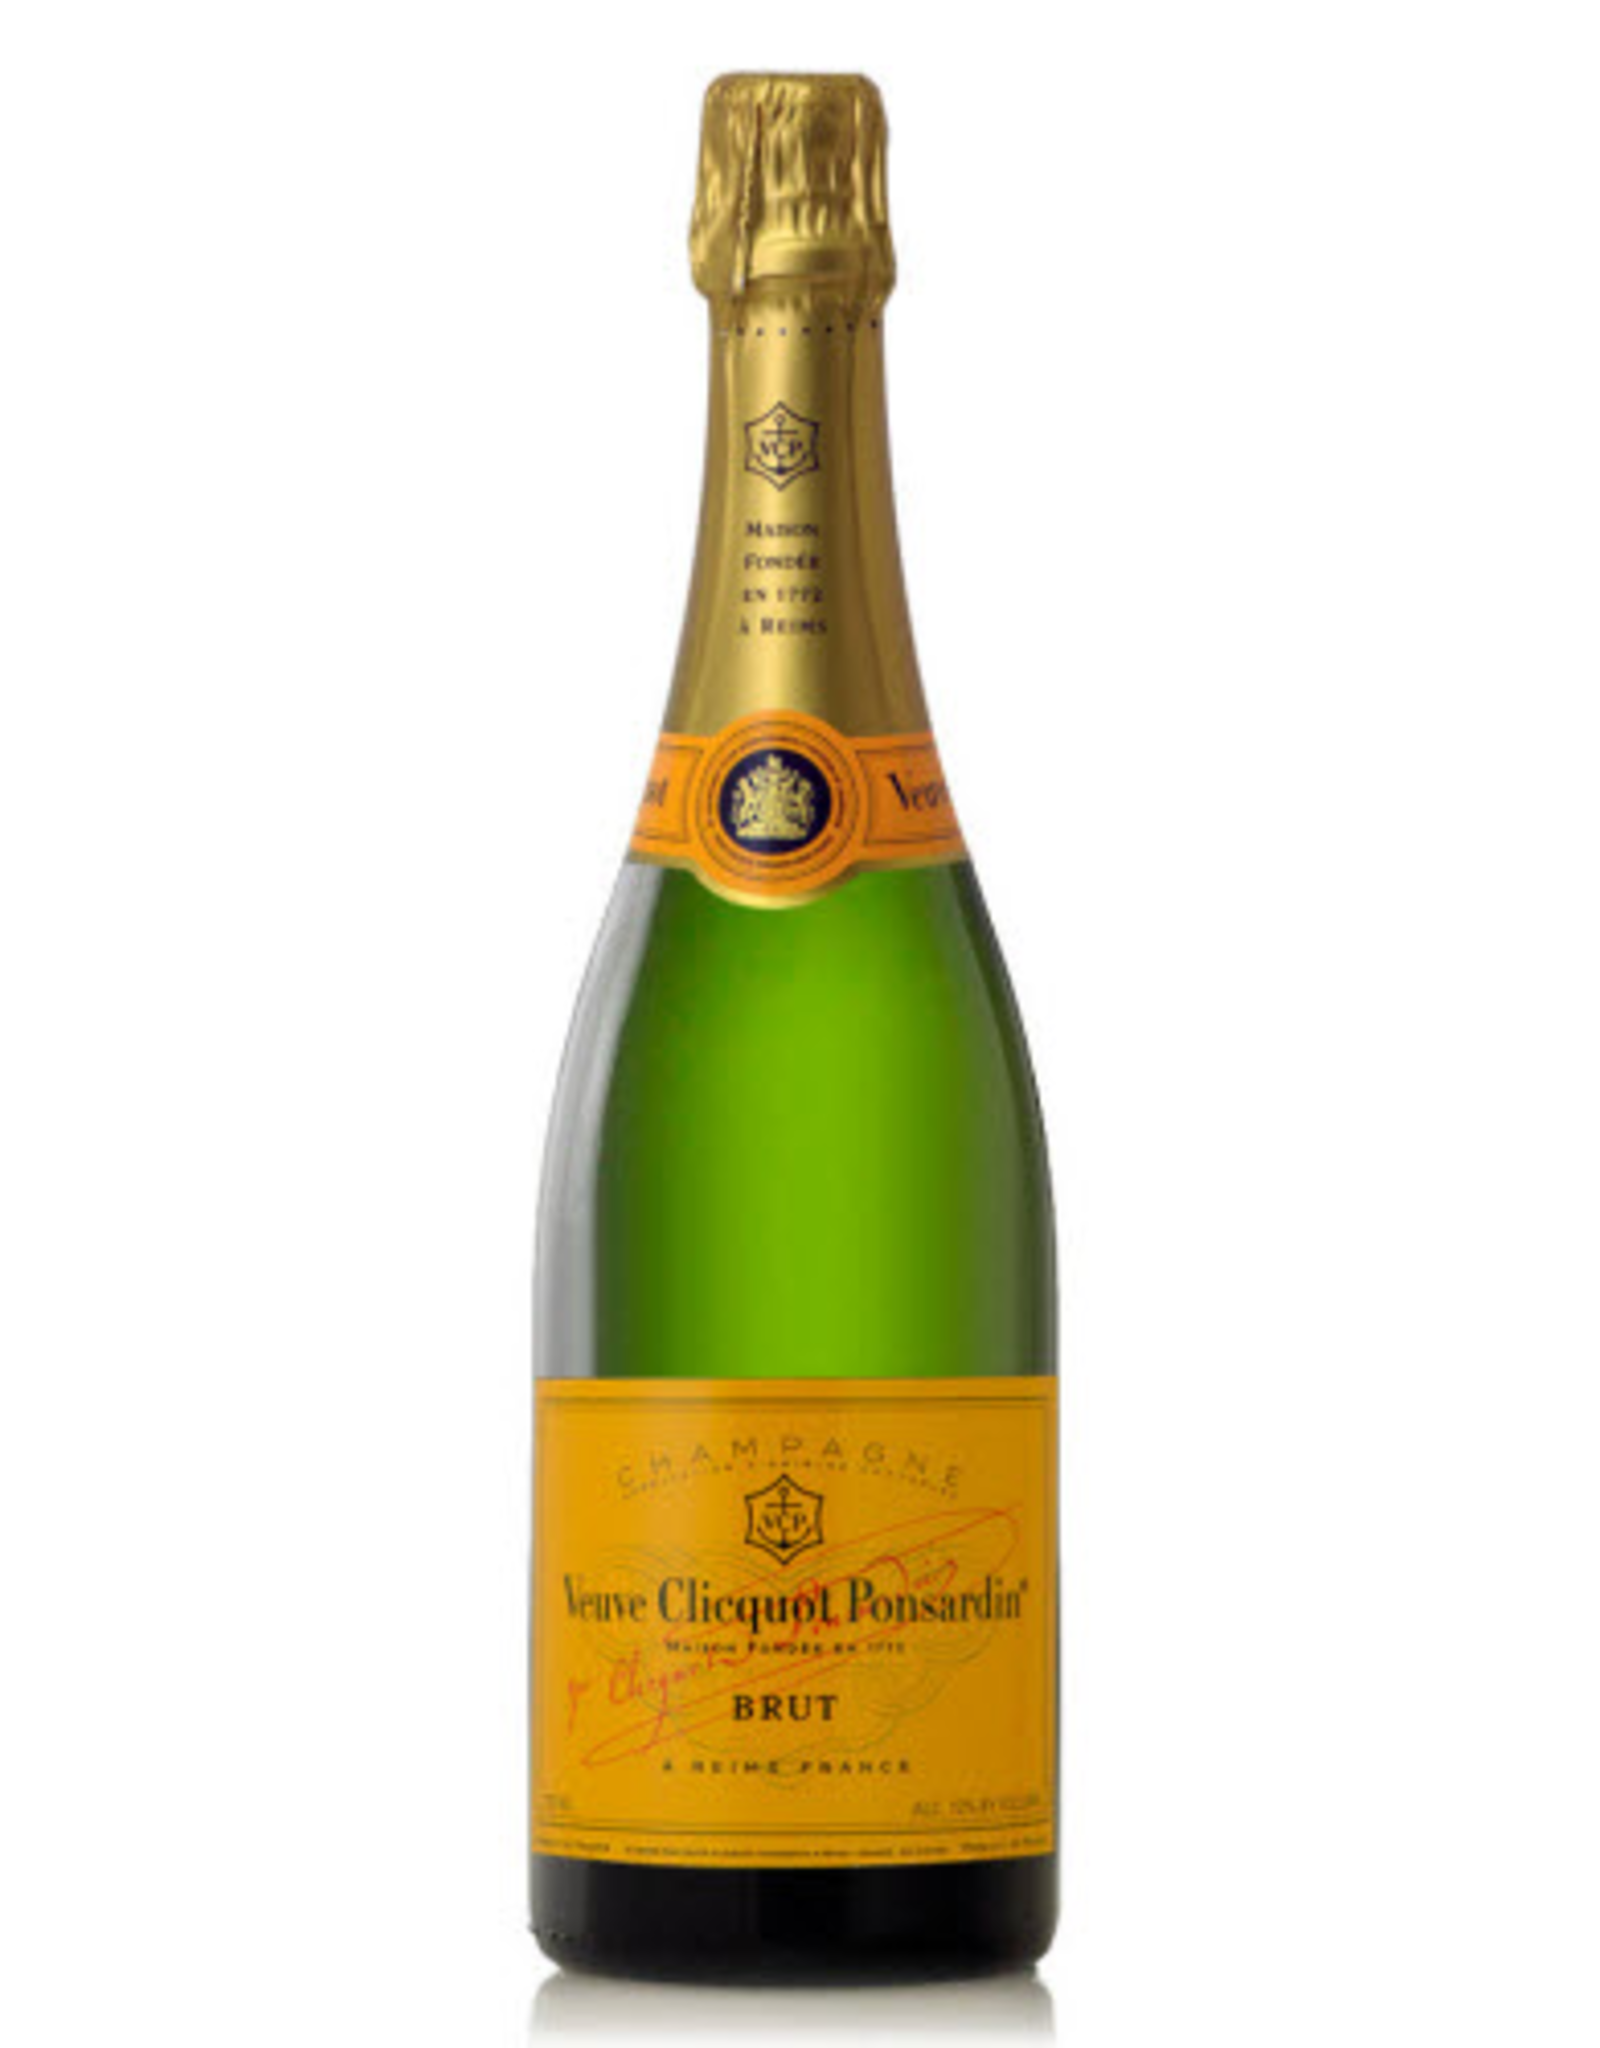 Sparkling Wine NV, Veuve Clicquot Ponsardin Reserve Cuvee Brut Yellow Label, Champagne, Reims, Champagne, France, 14% Alc, TW90